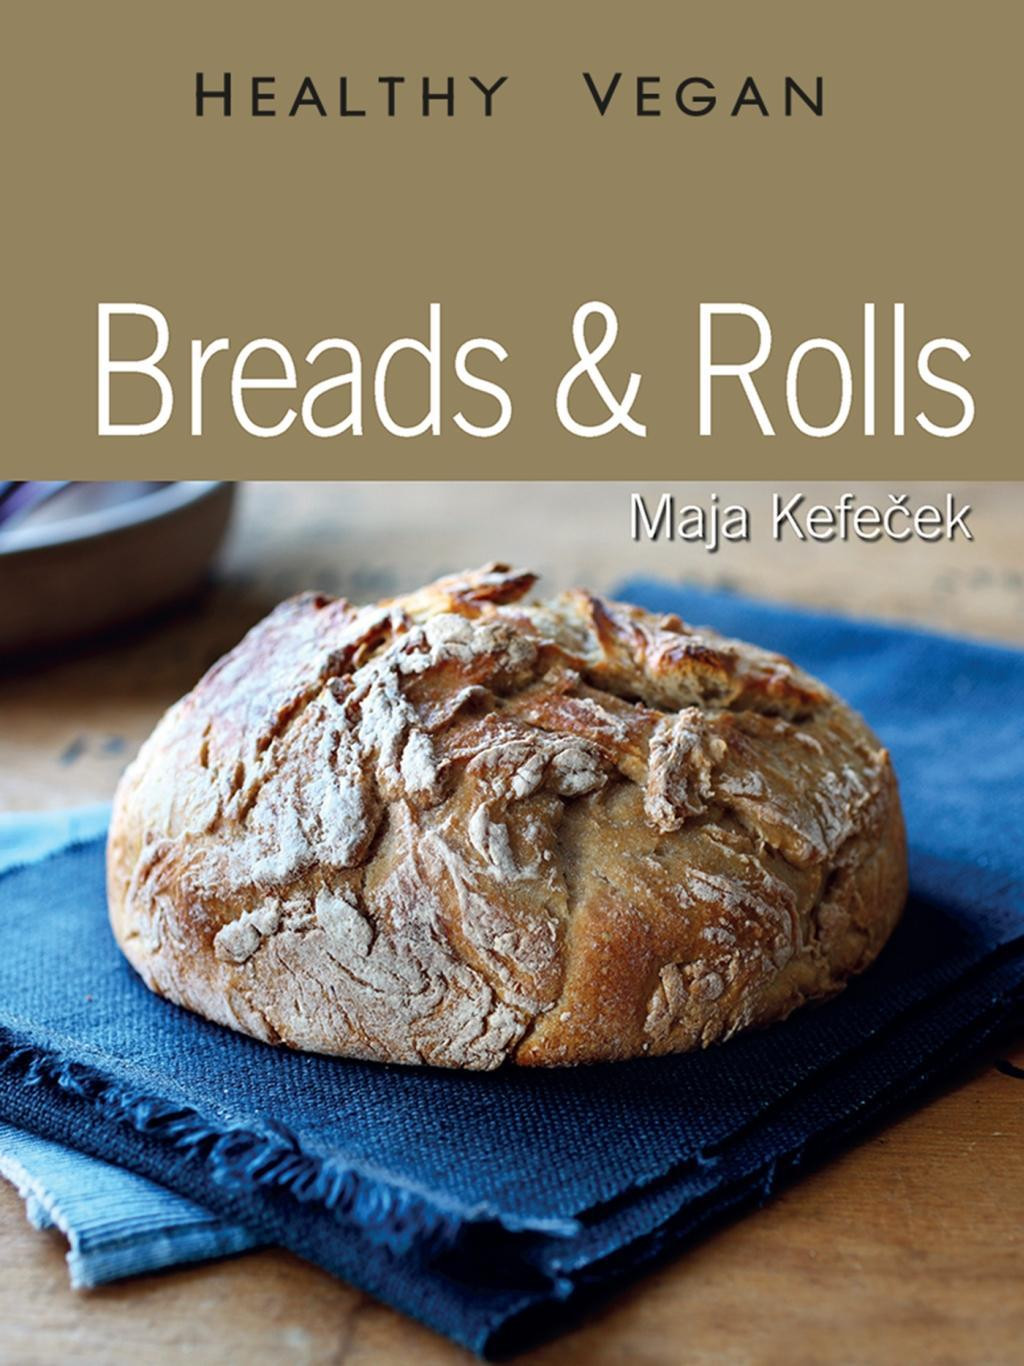 Healthy Store Bought Bread  Breads and Rolls Healthy Vegan Amazon Kindle Store